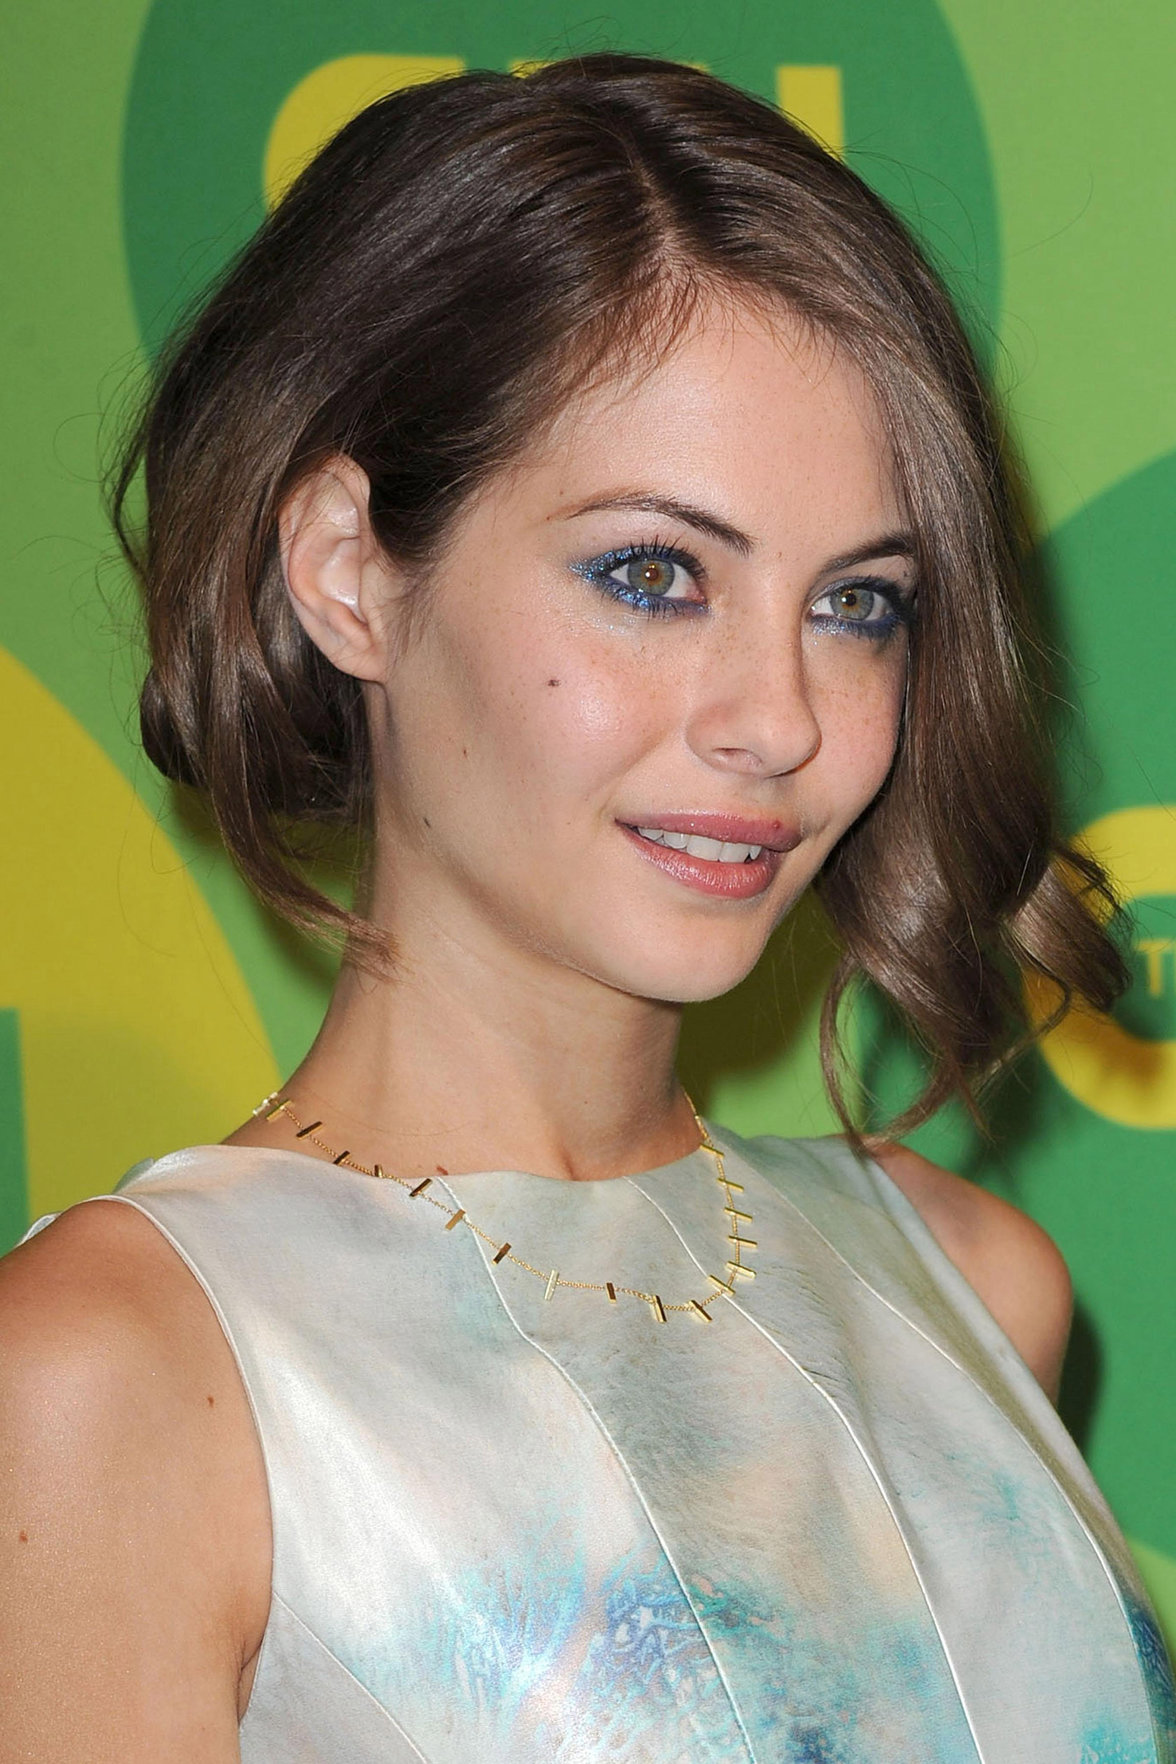 Willa Holland The CW Network's New York 2013 Upfront Presentation, May 16, 2013